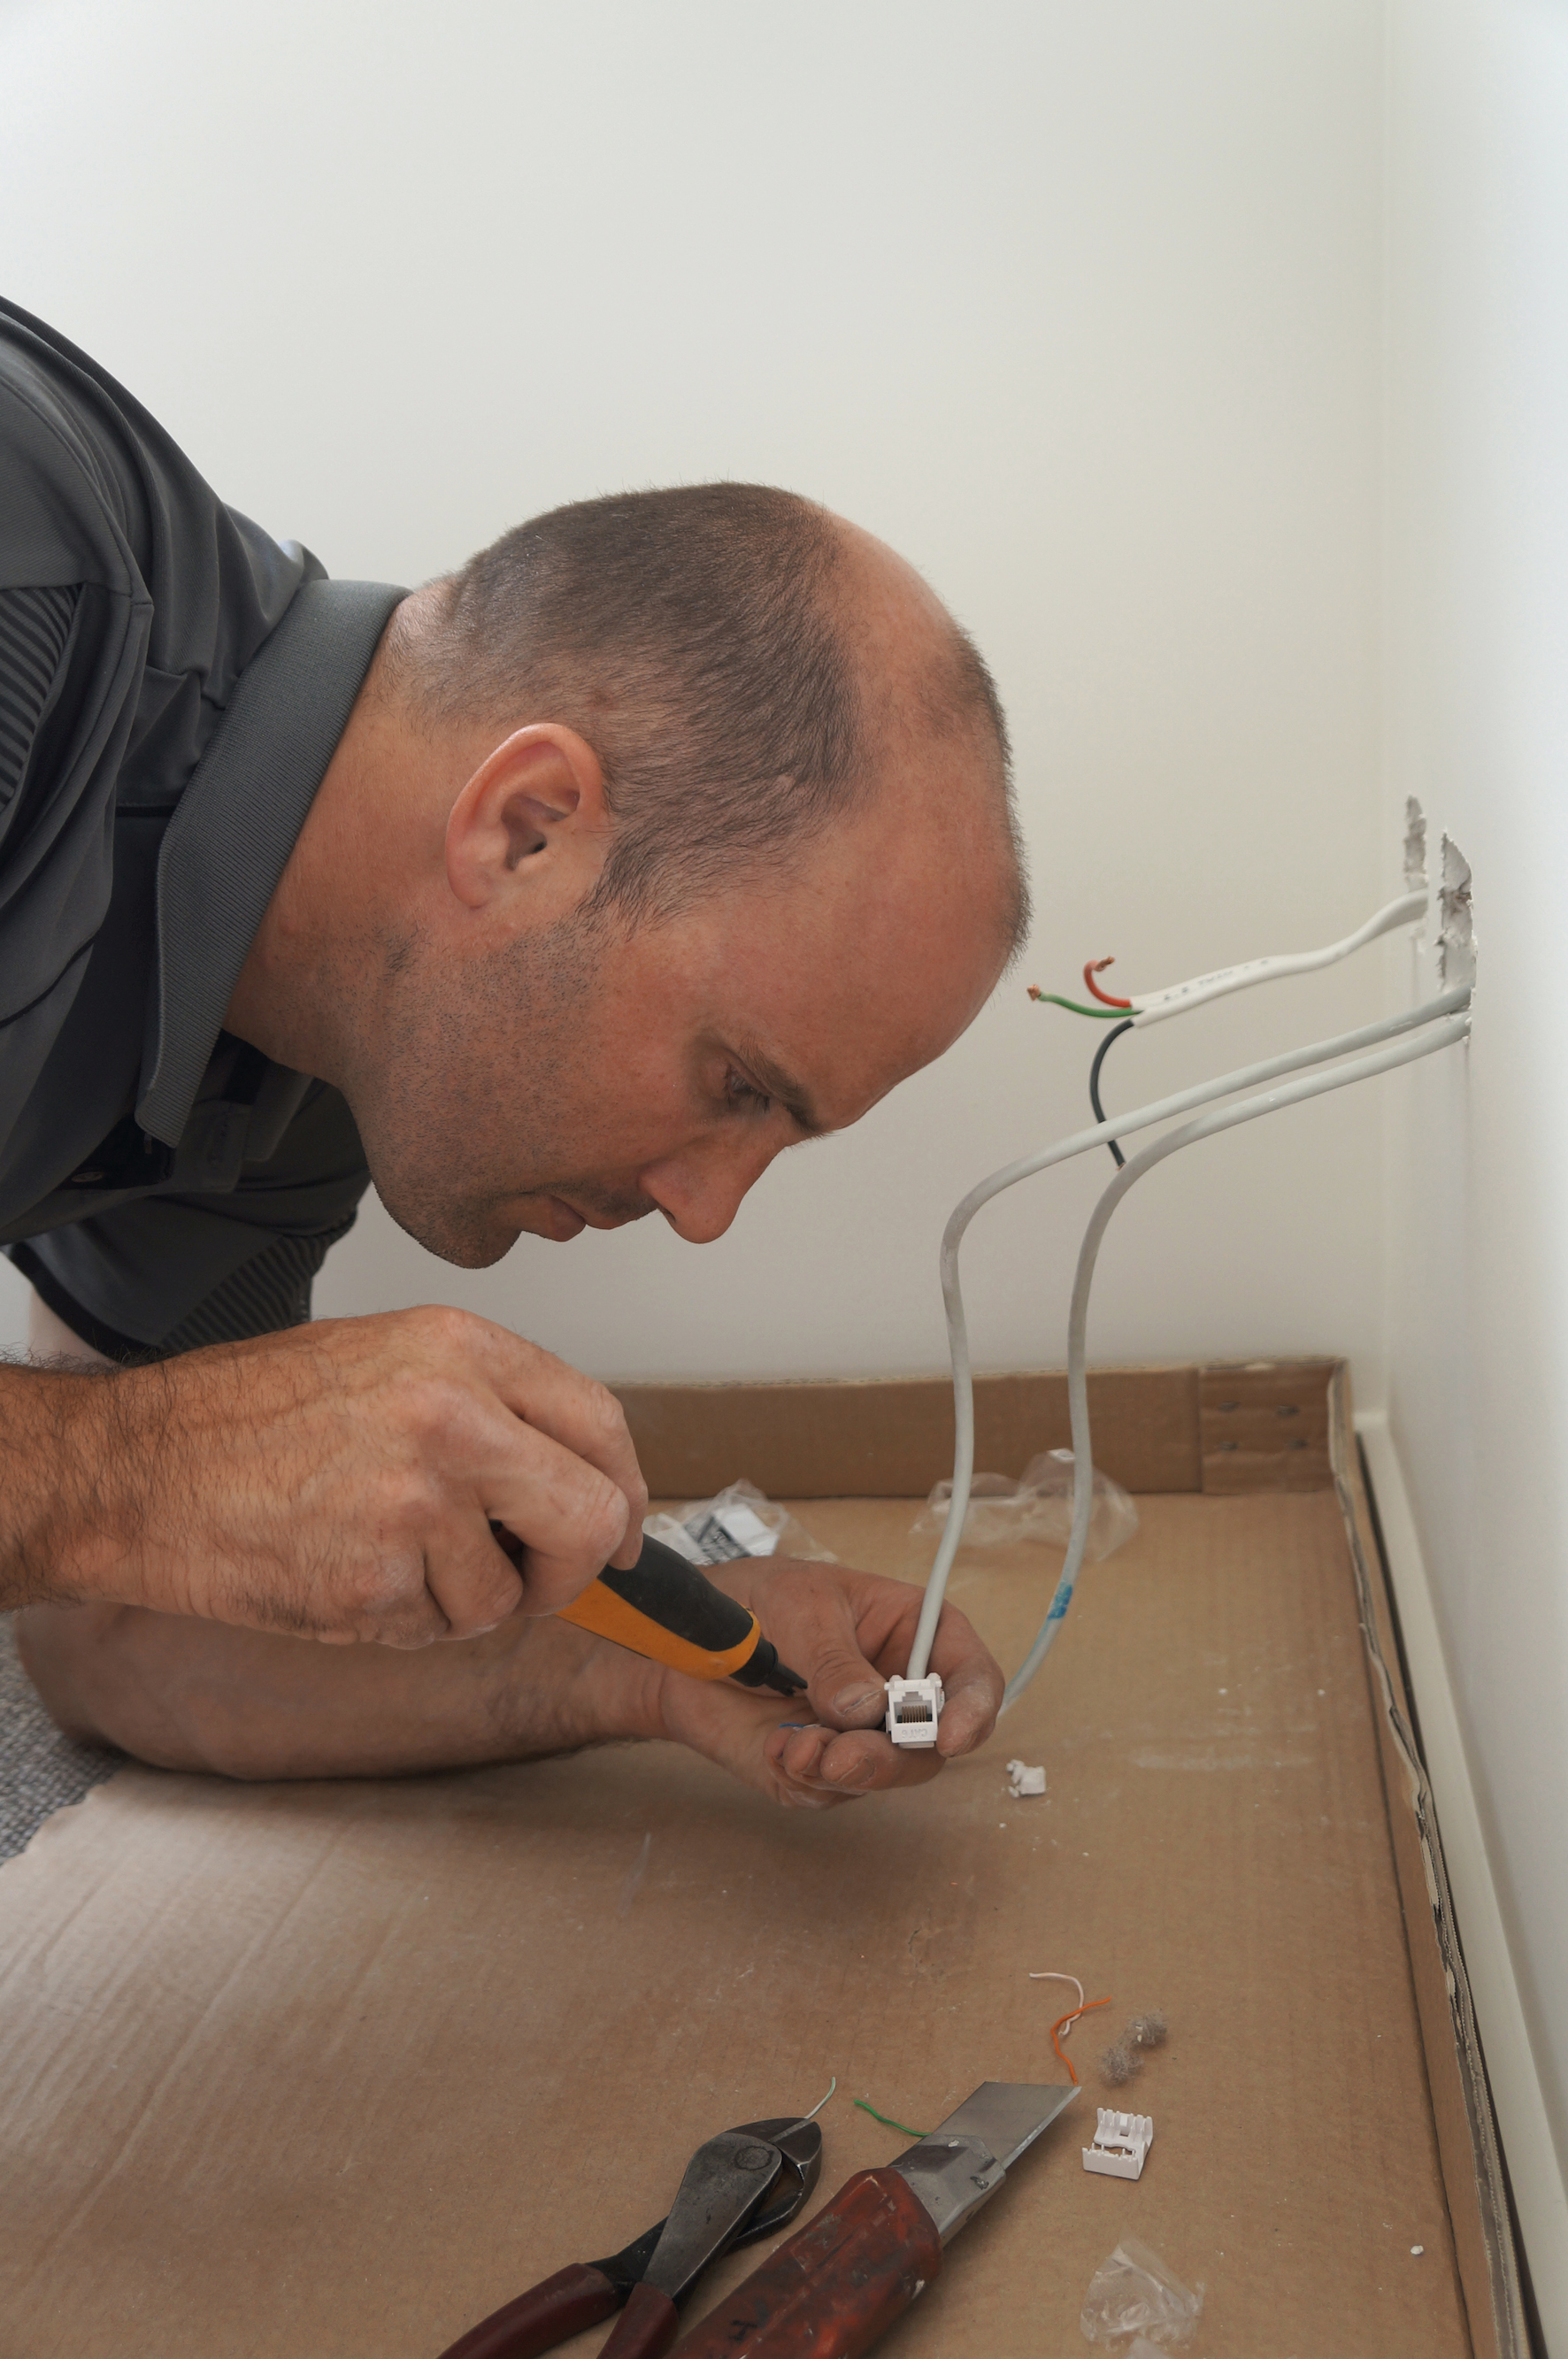 Josh Eves Registered Electrician, fitting a data outlet